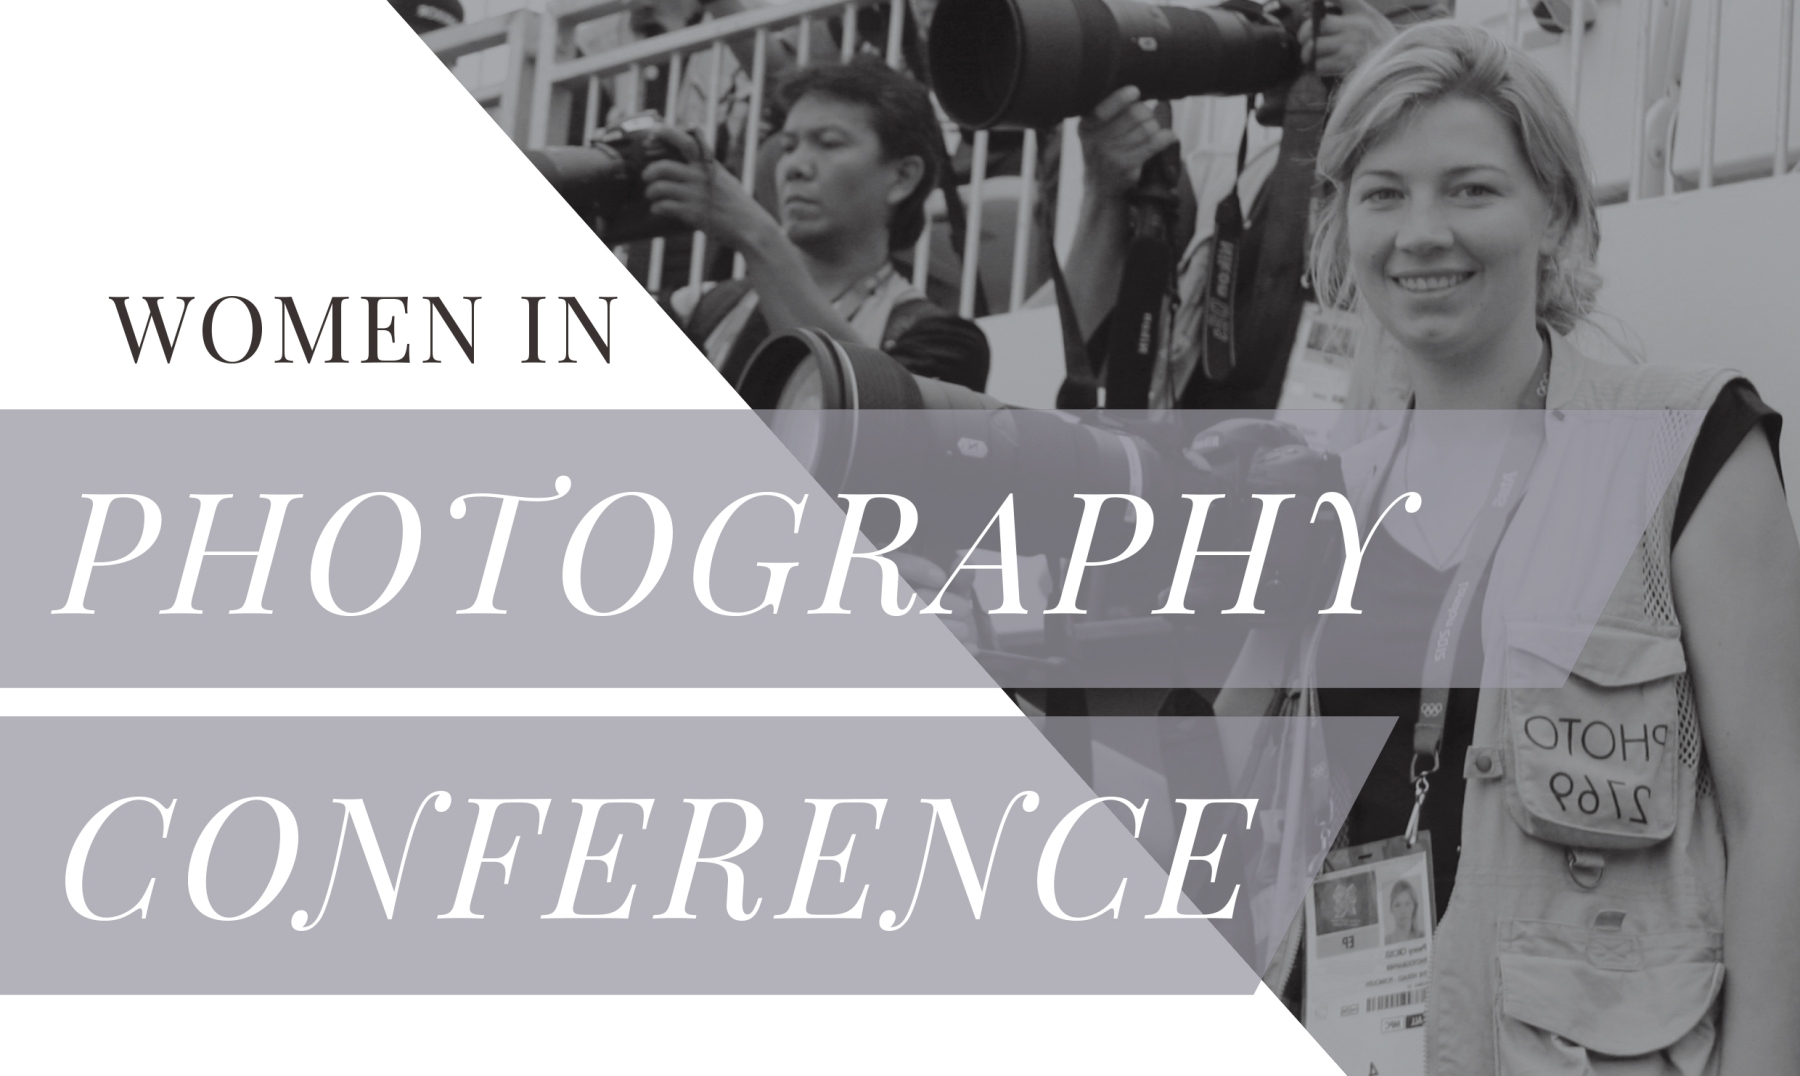 Women in Photography Conference Plymouth